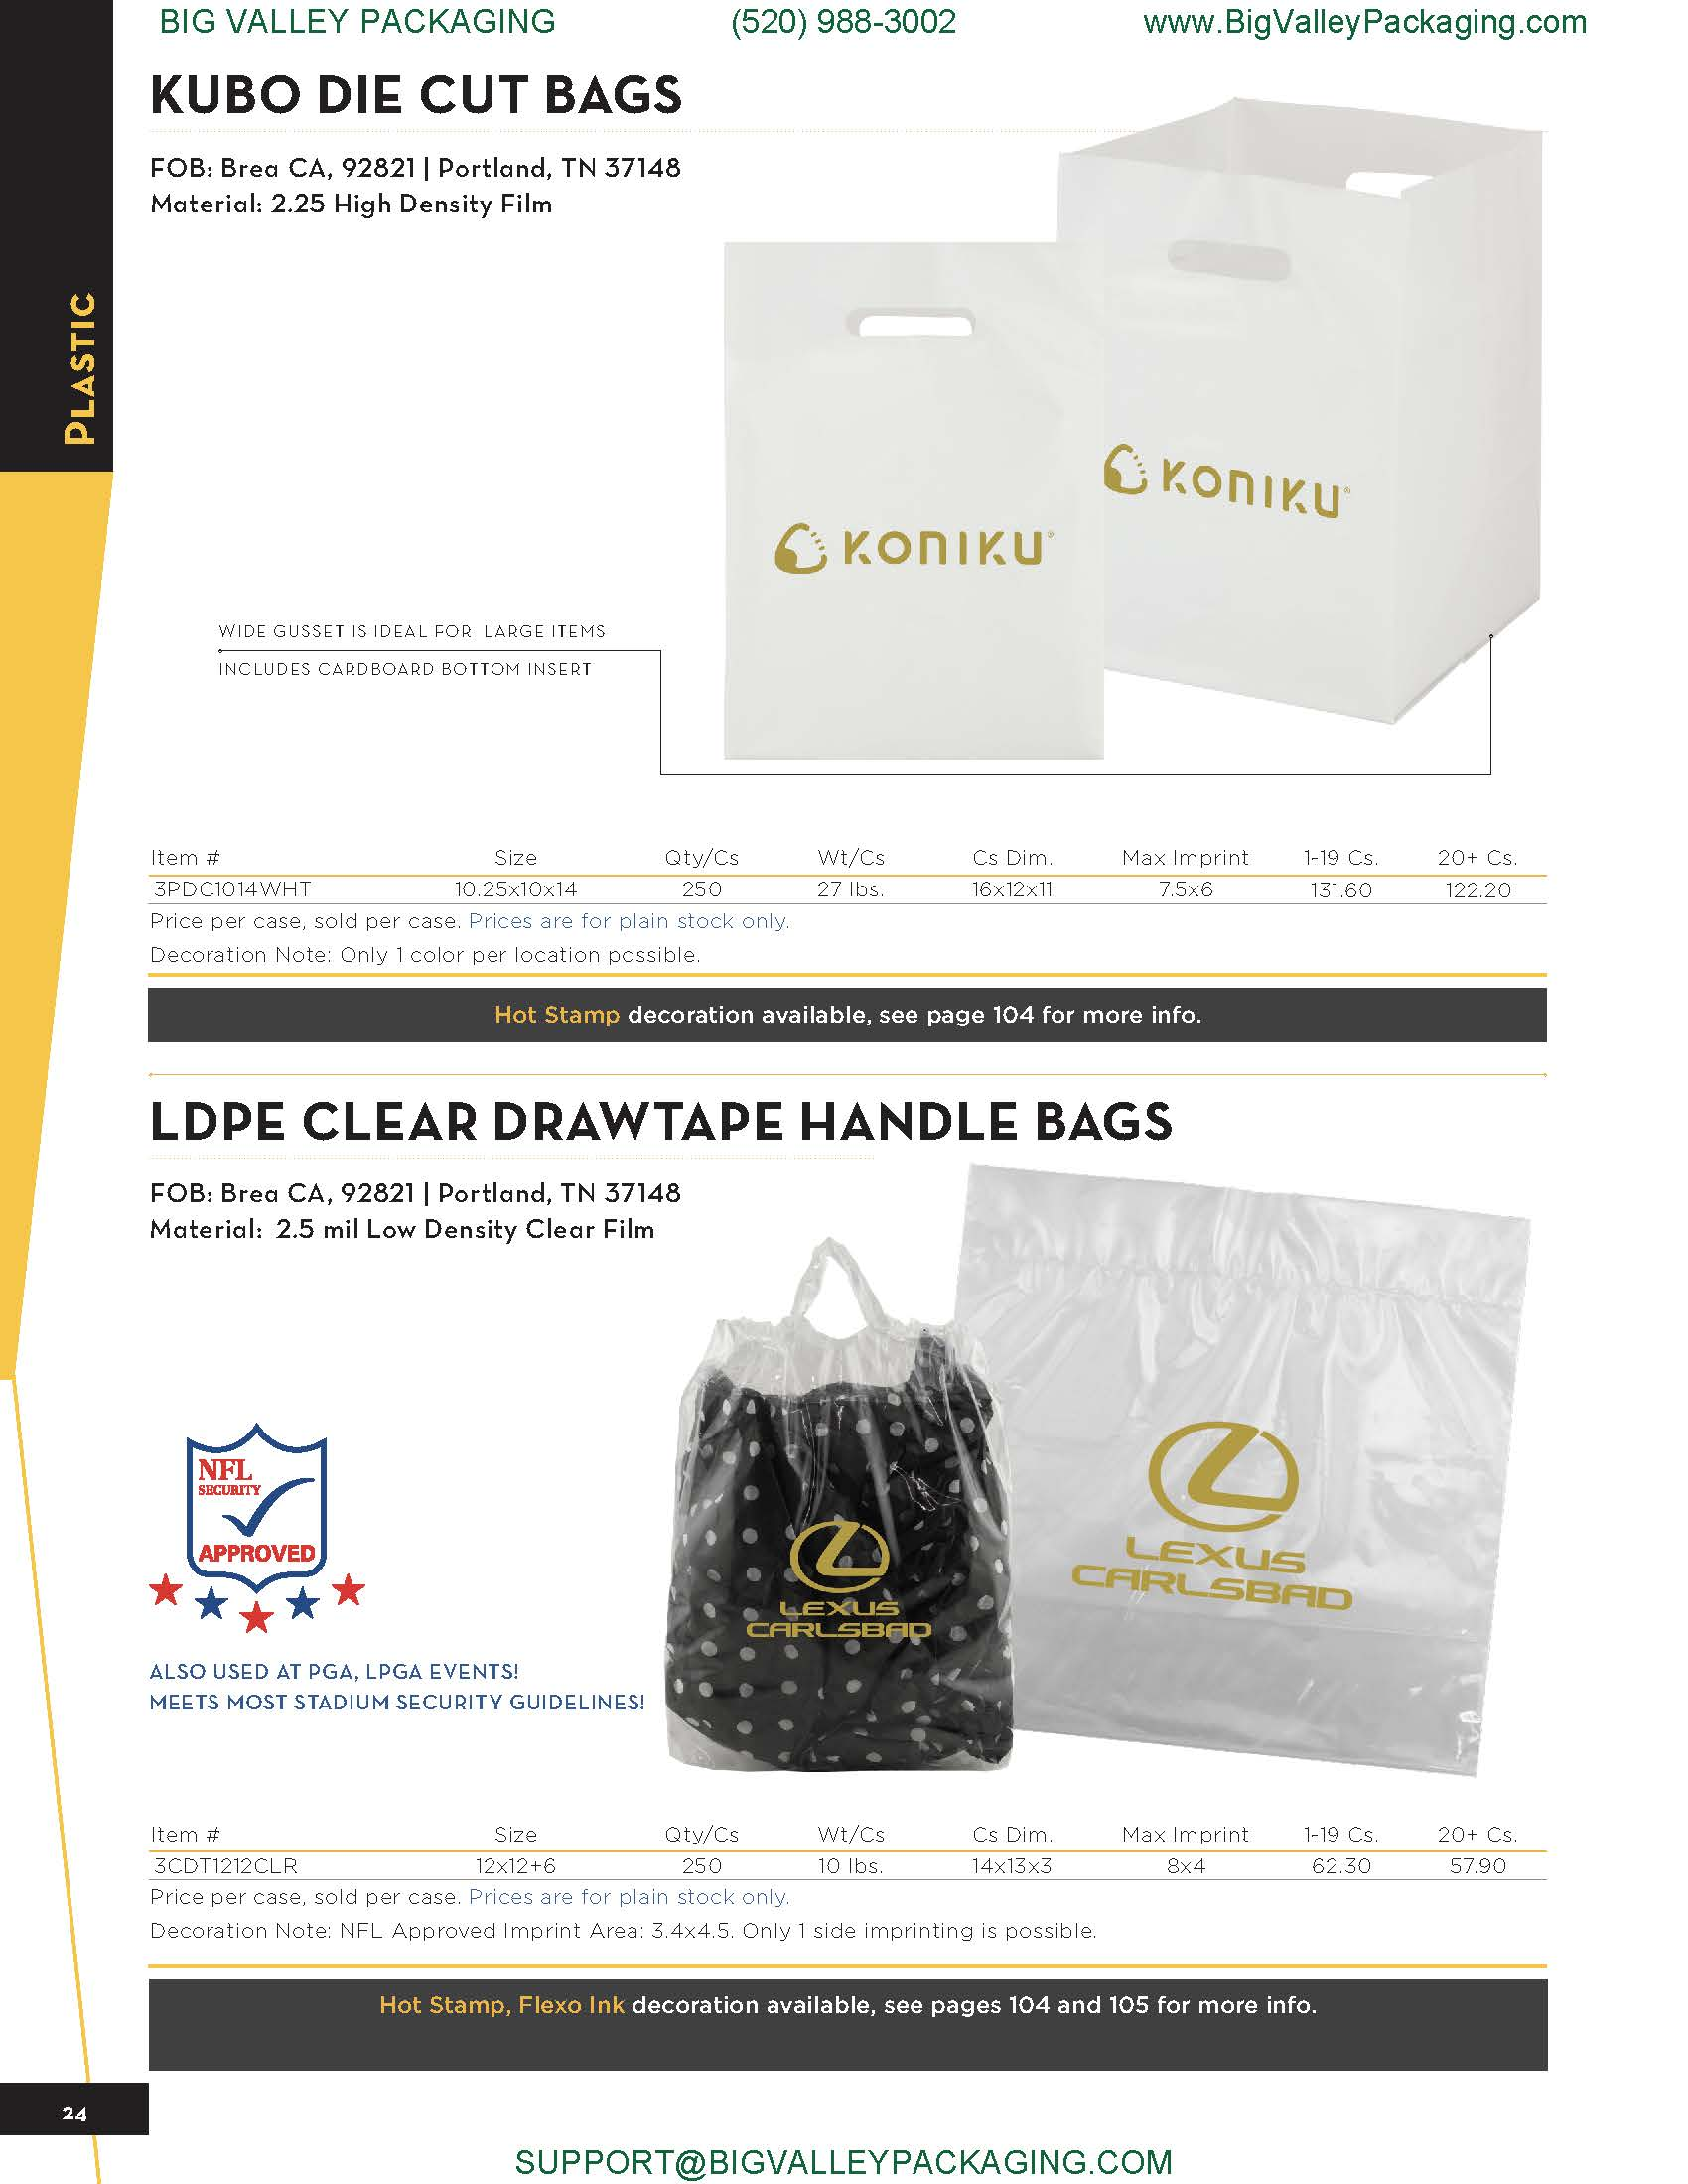 KUBO DIE CUT BAGS LDPE CLEAR DRAWTAPE HANDLE BAGS